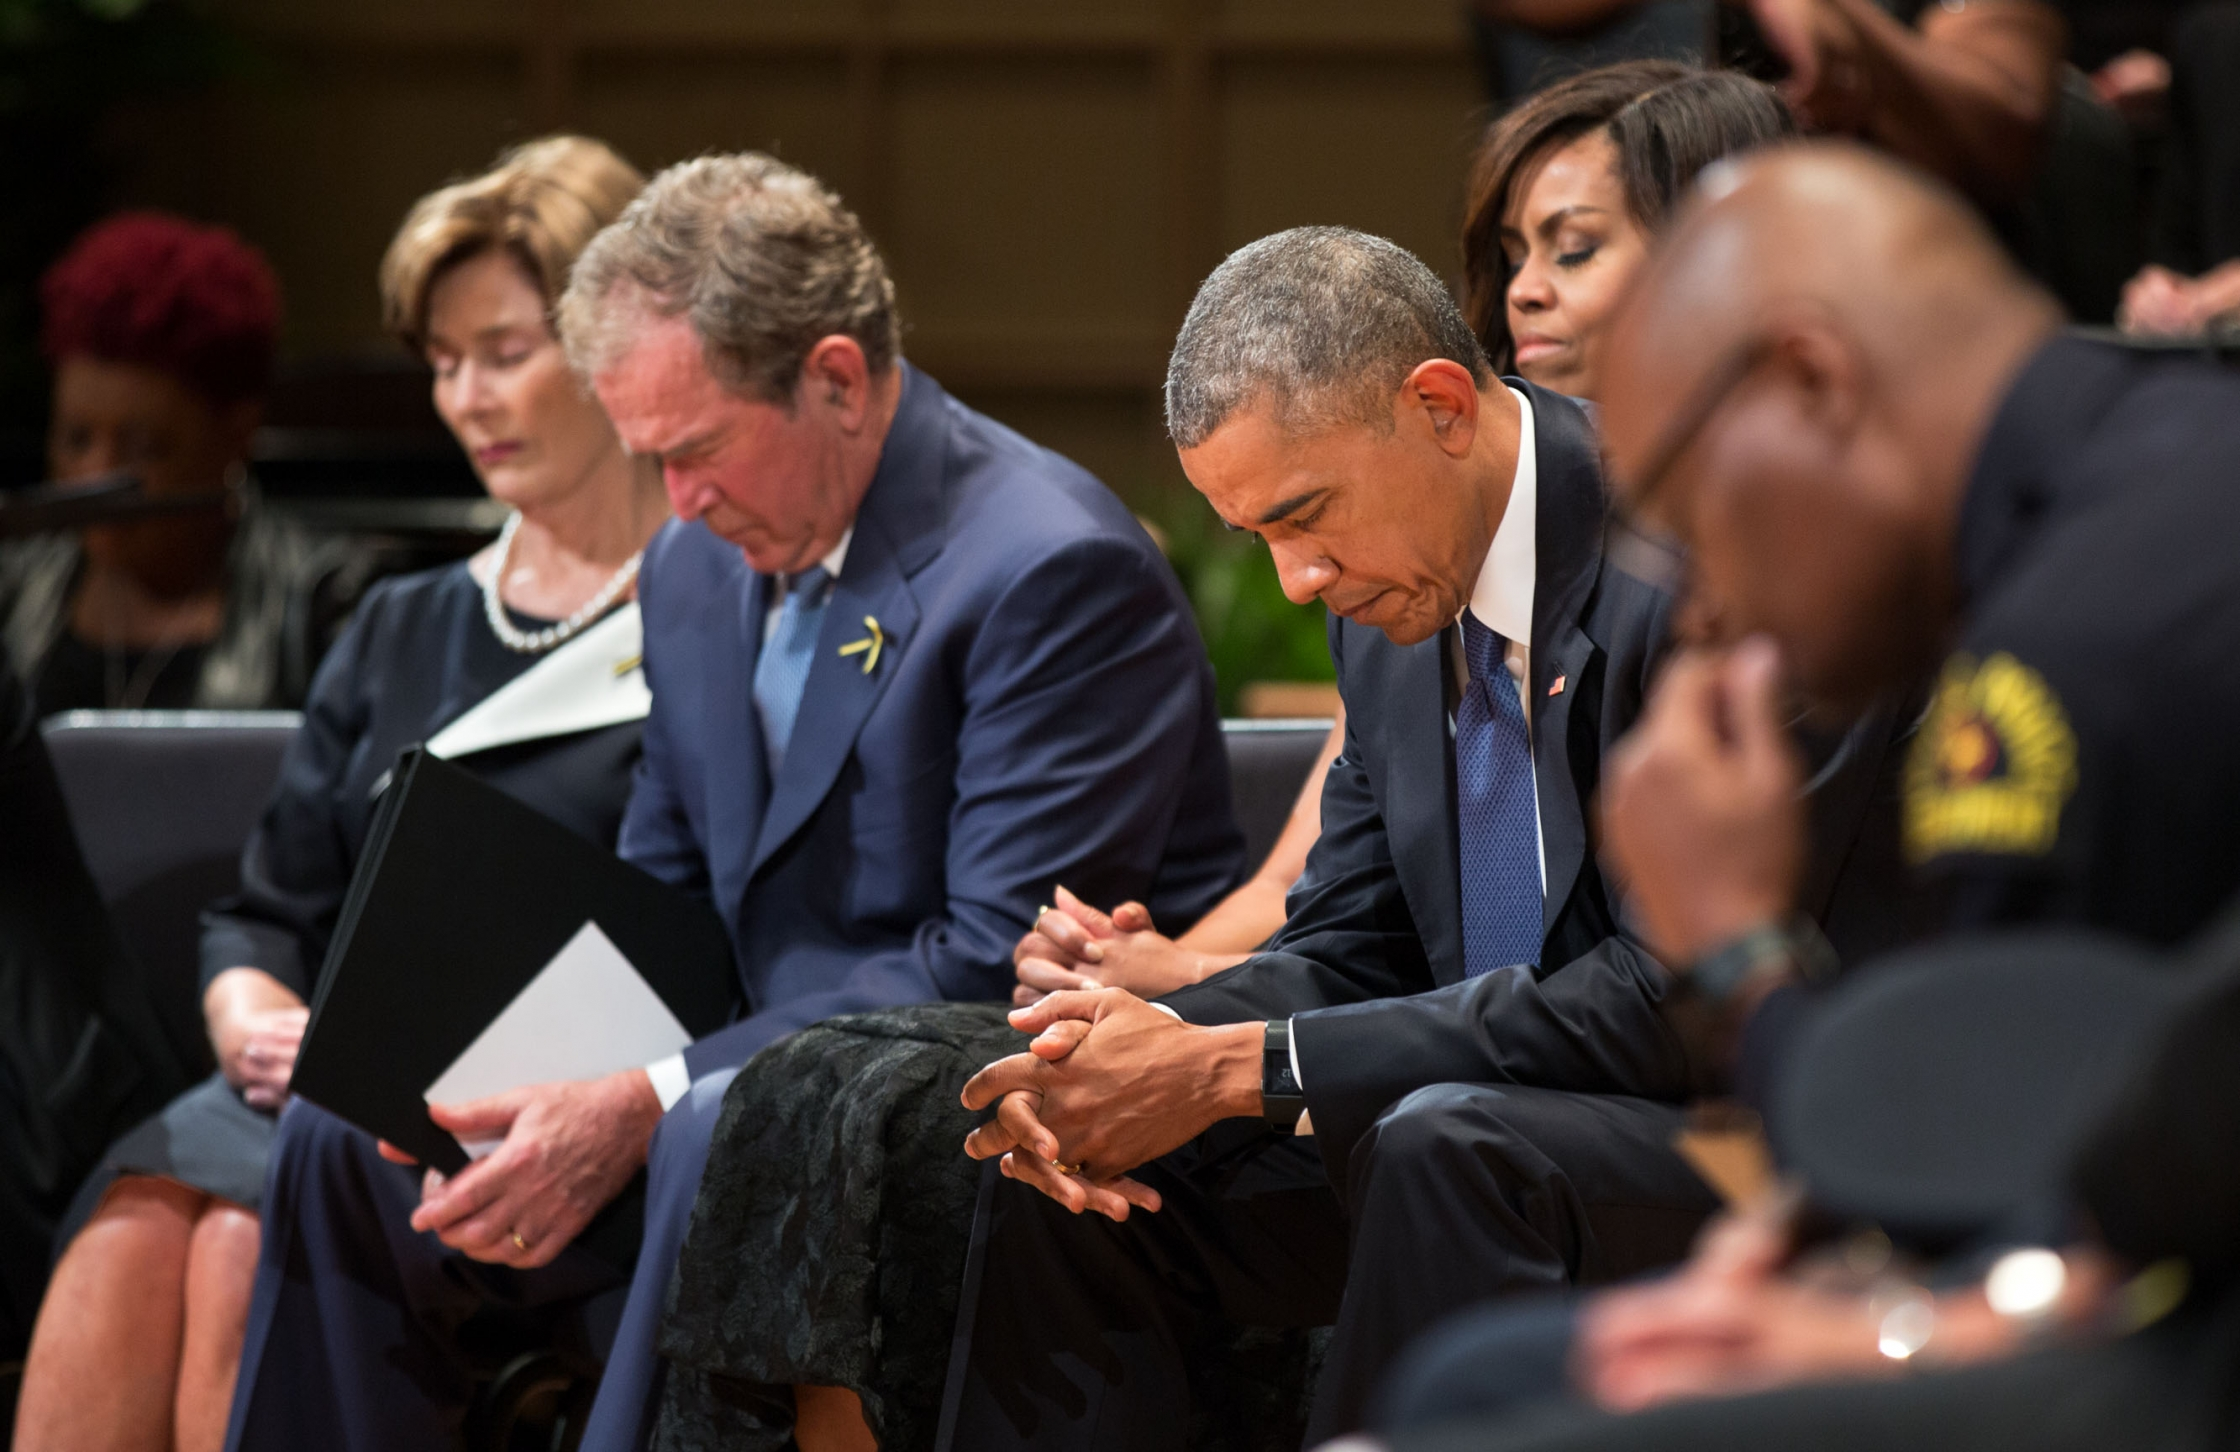 President Barack Obama, First Lady Michelle Obama, former President George W. Bush and former First Lady Laura Bush bow their heads during a prayer at the Interfaith Memorial Service for five fallen police officers in Dallas, Texas, July 12, 2016. Dallas Police Chief David Brown is at right. (Official White House Photo by Pete Souza)